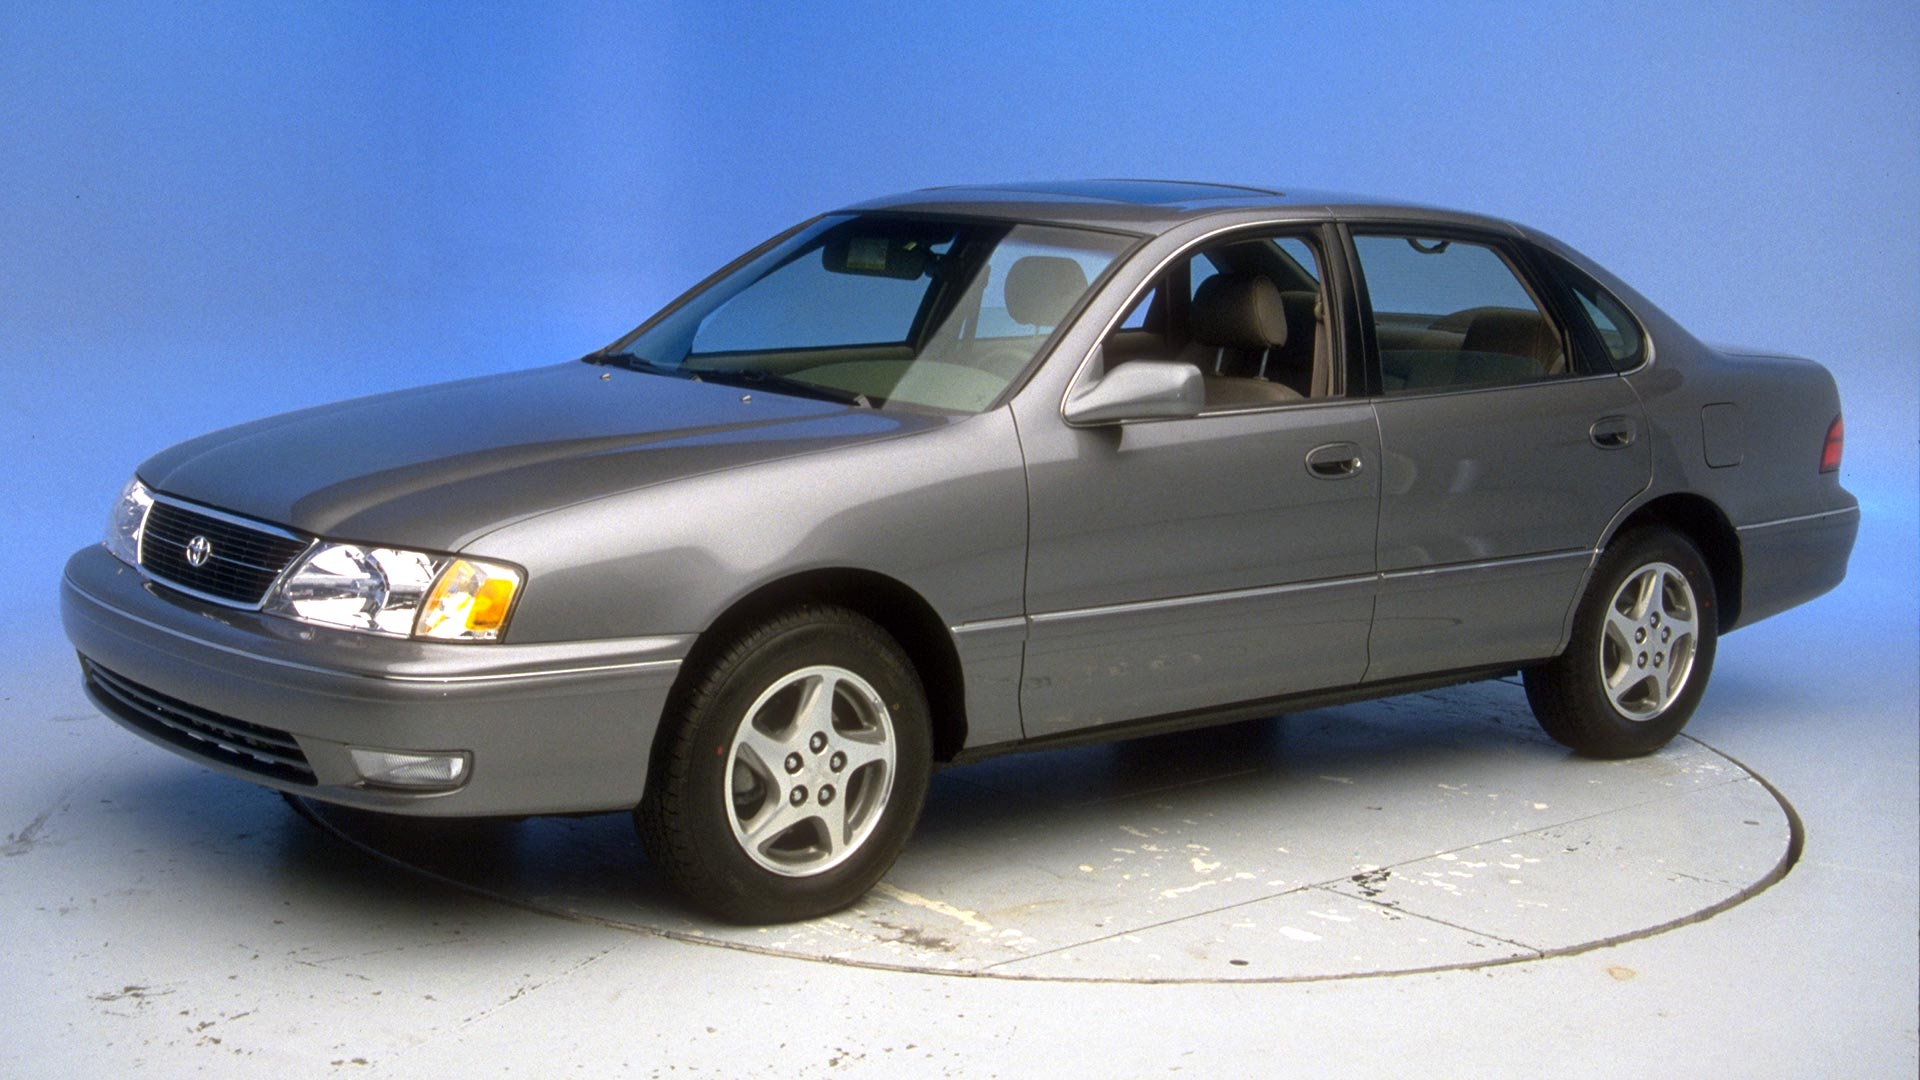 1998 Toyota Avalon 4-door sedan